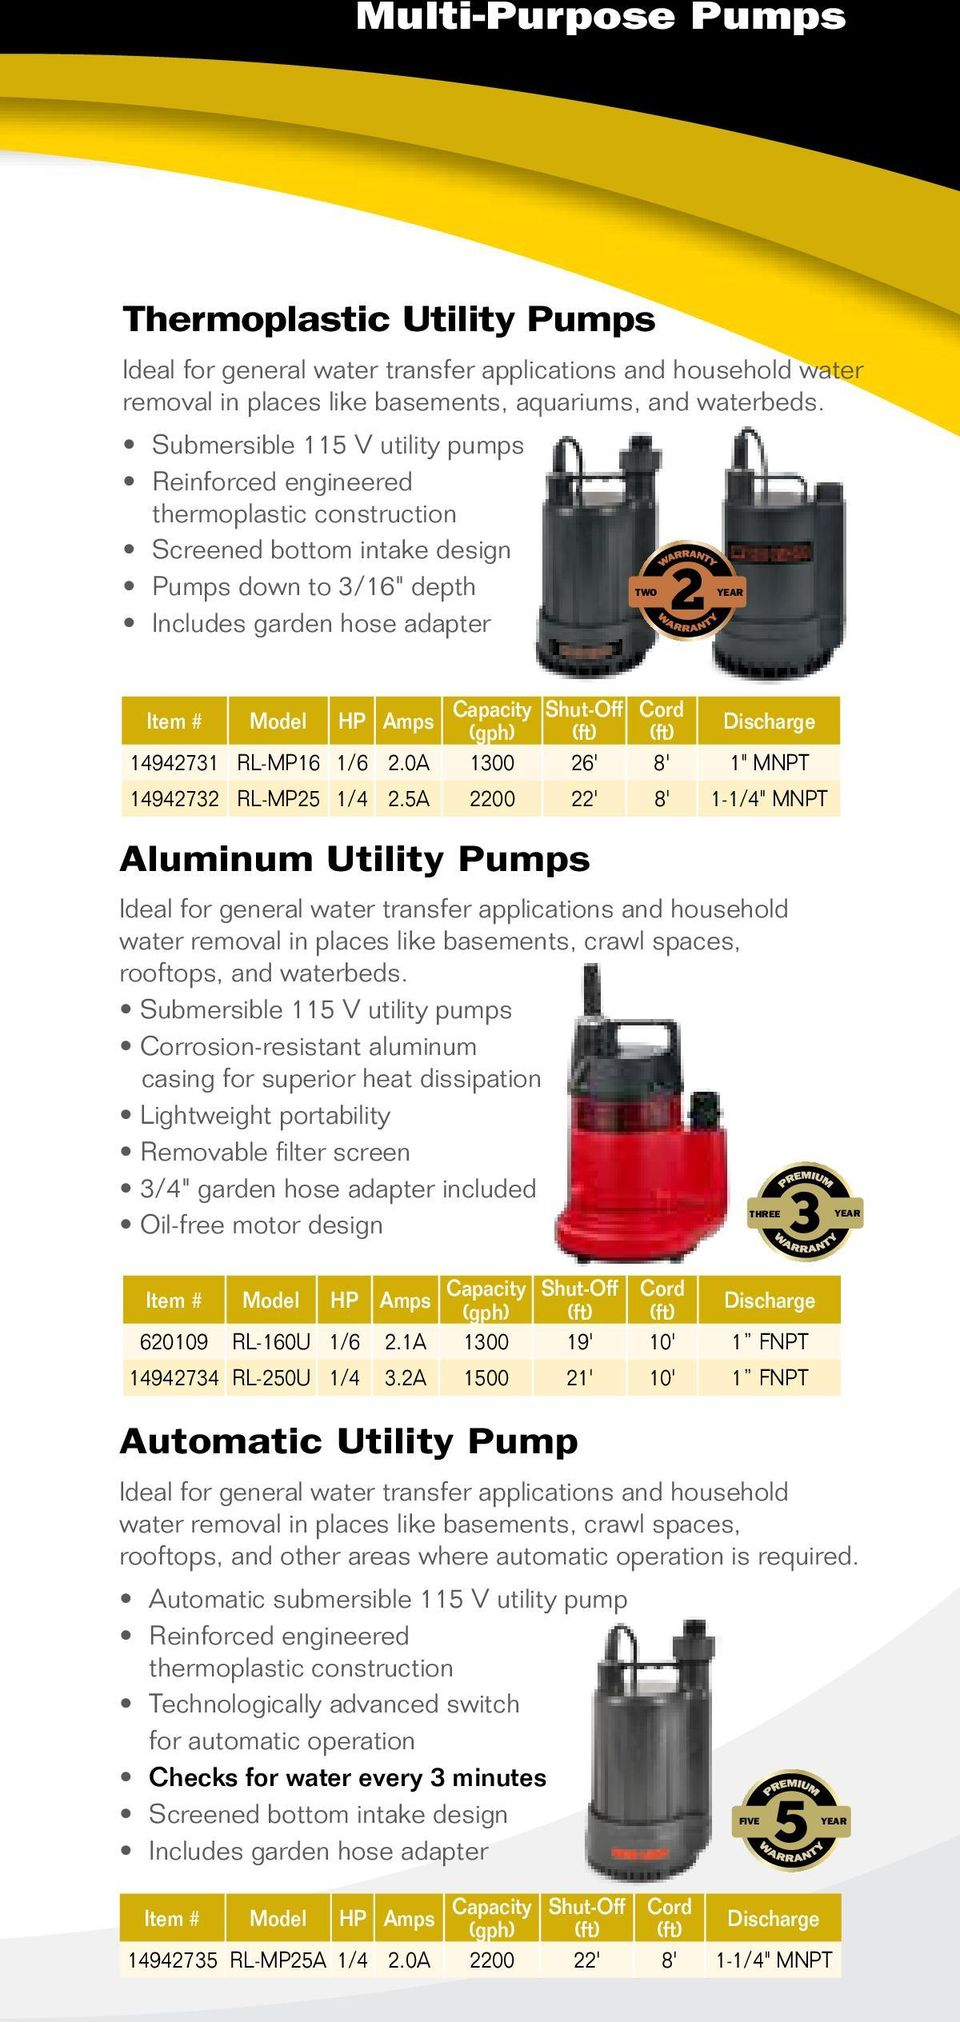 What Does A Sump Pump Do Pdf Pumps Flygt Submersible Liberty Logo Godwin Diagram Capacity Shut Off Cord Gph Ft Discharge 14942731 18 Self Priming Utility Transfer Ideal For Pumping